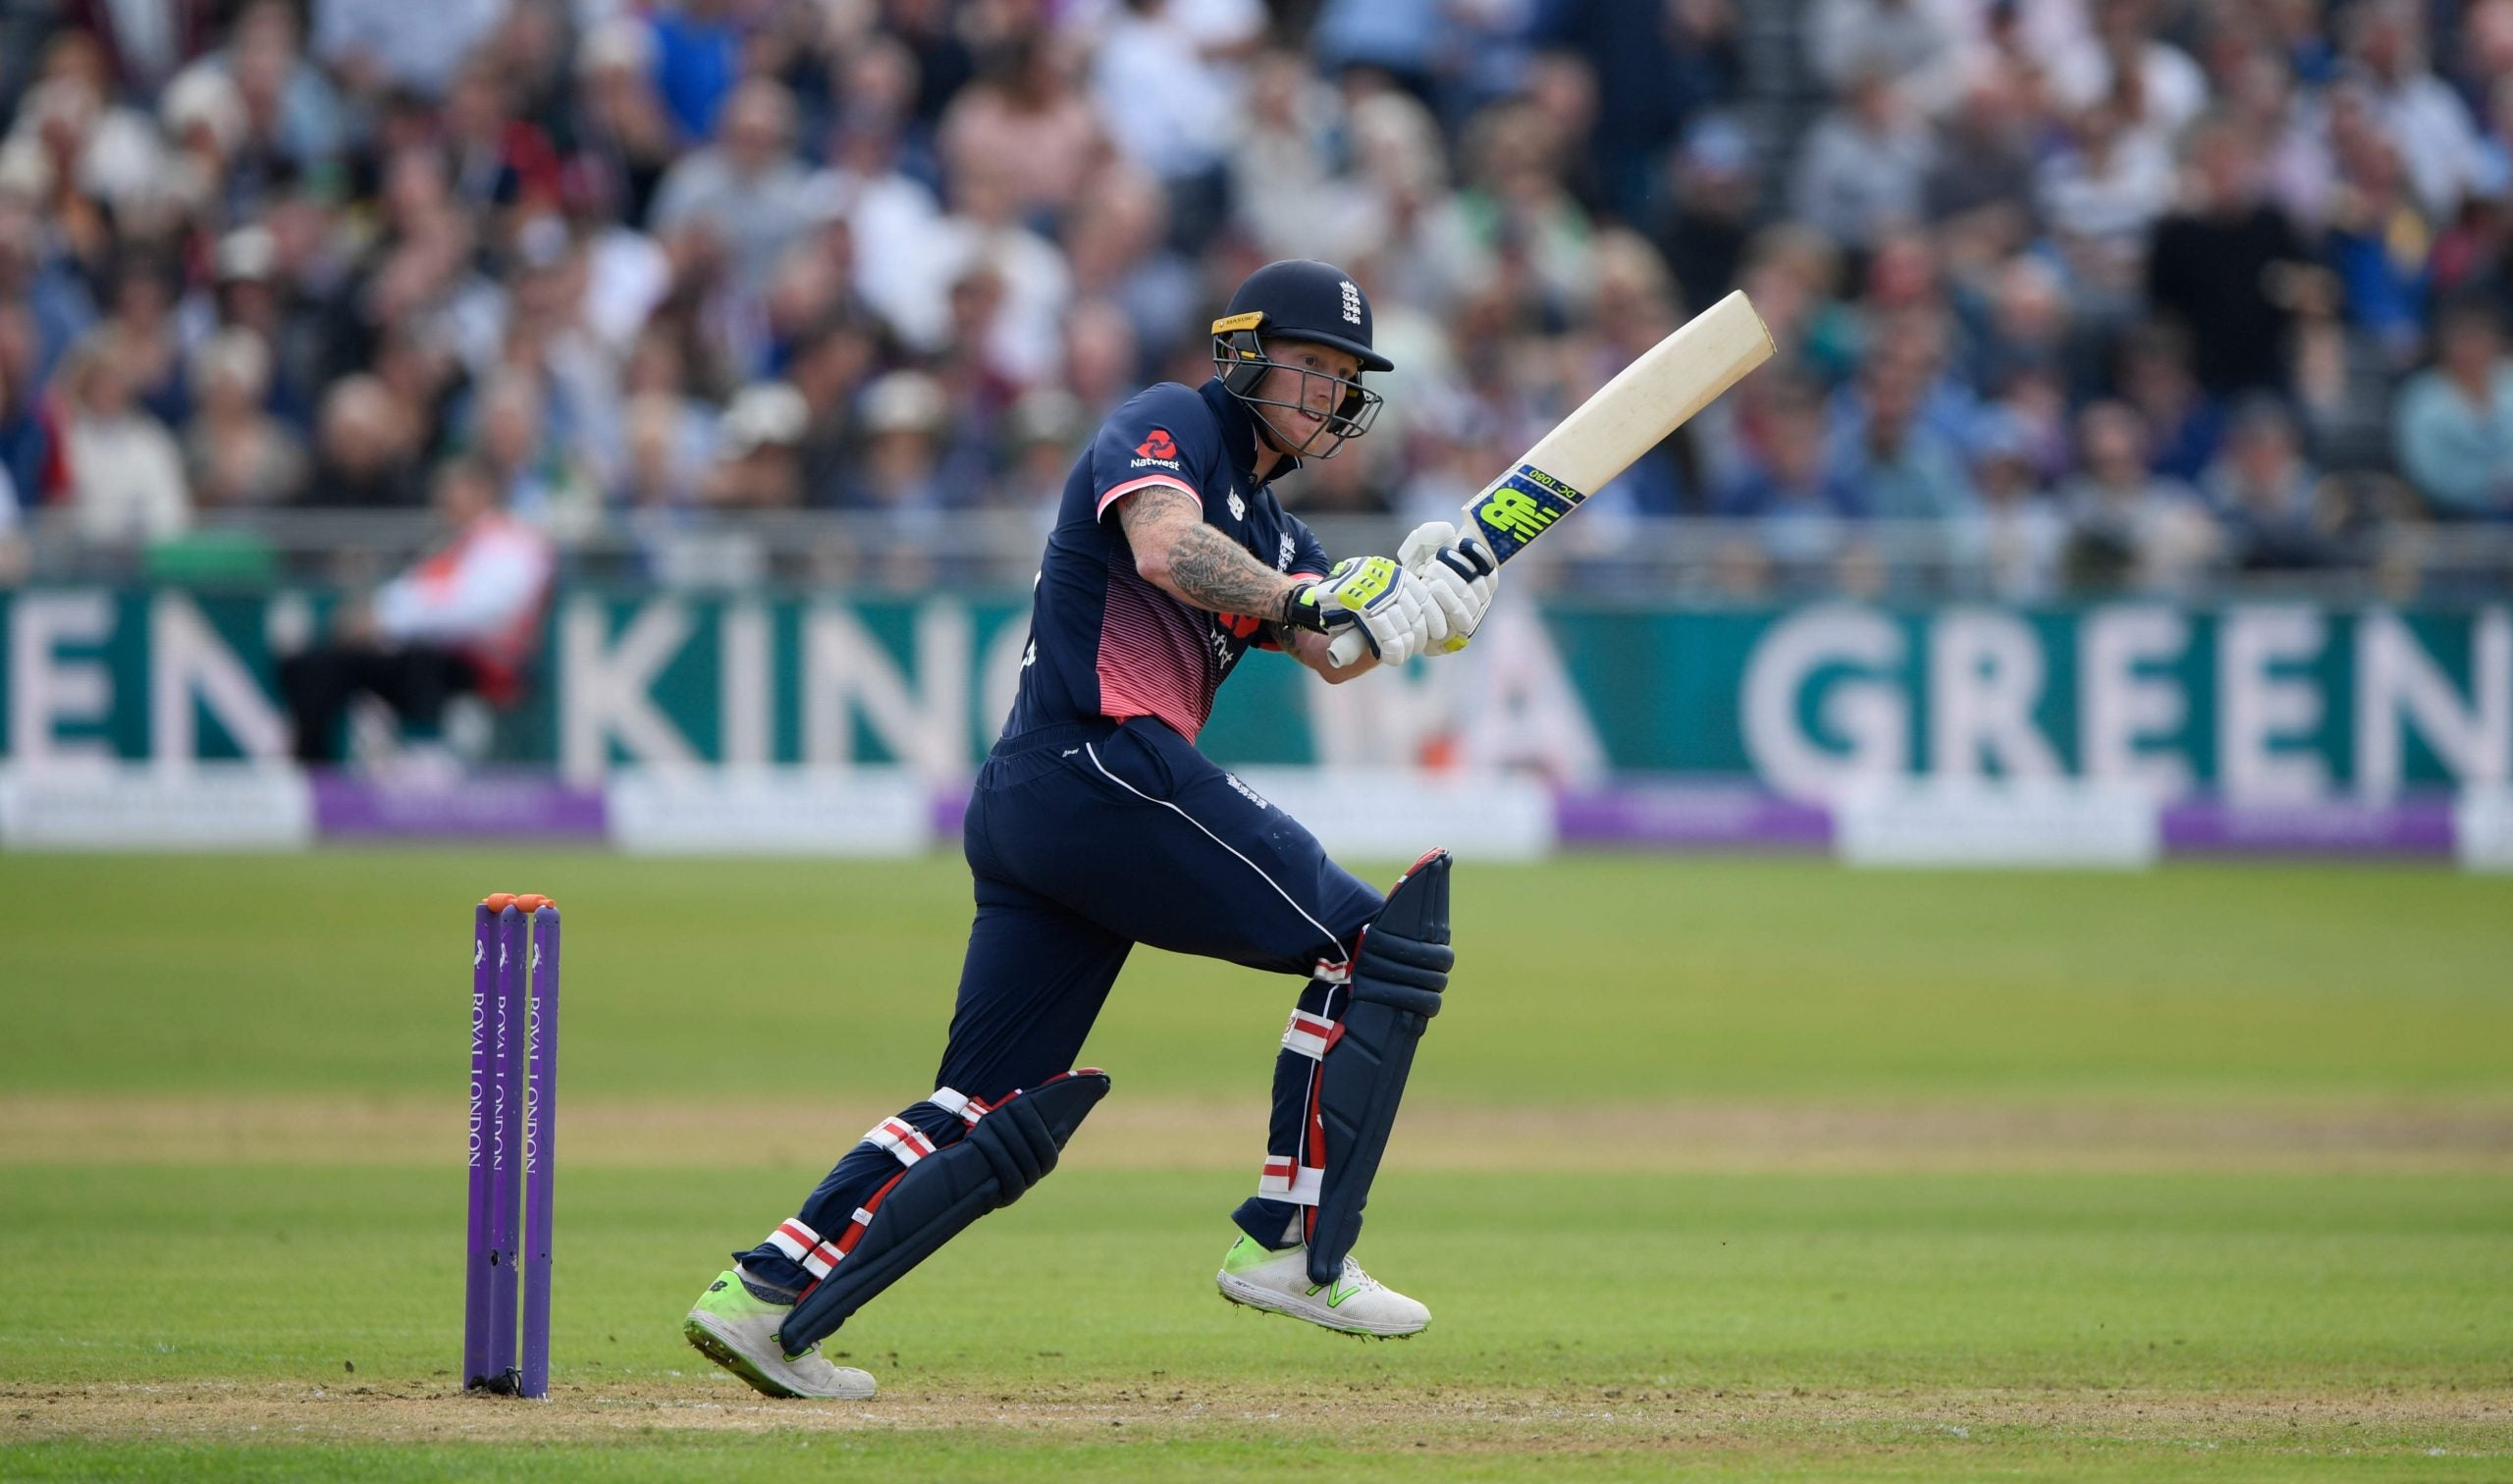 The Ben Stokes saga: should sports stars really be held to a higher account?